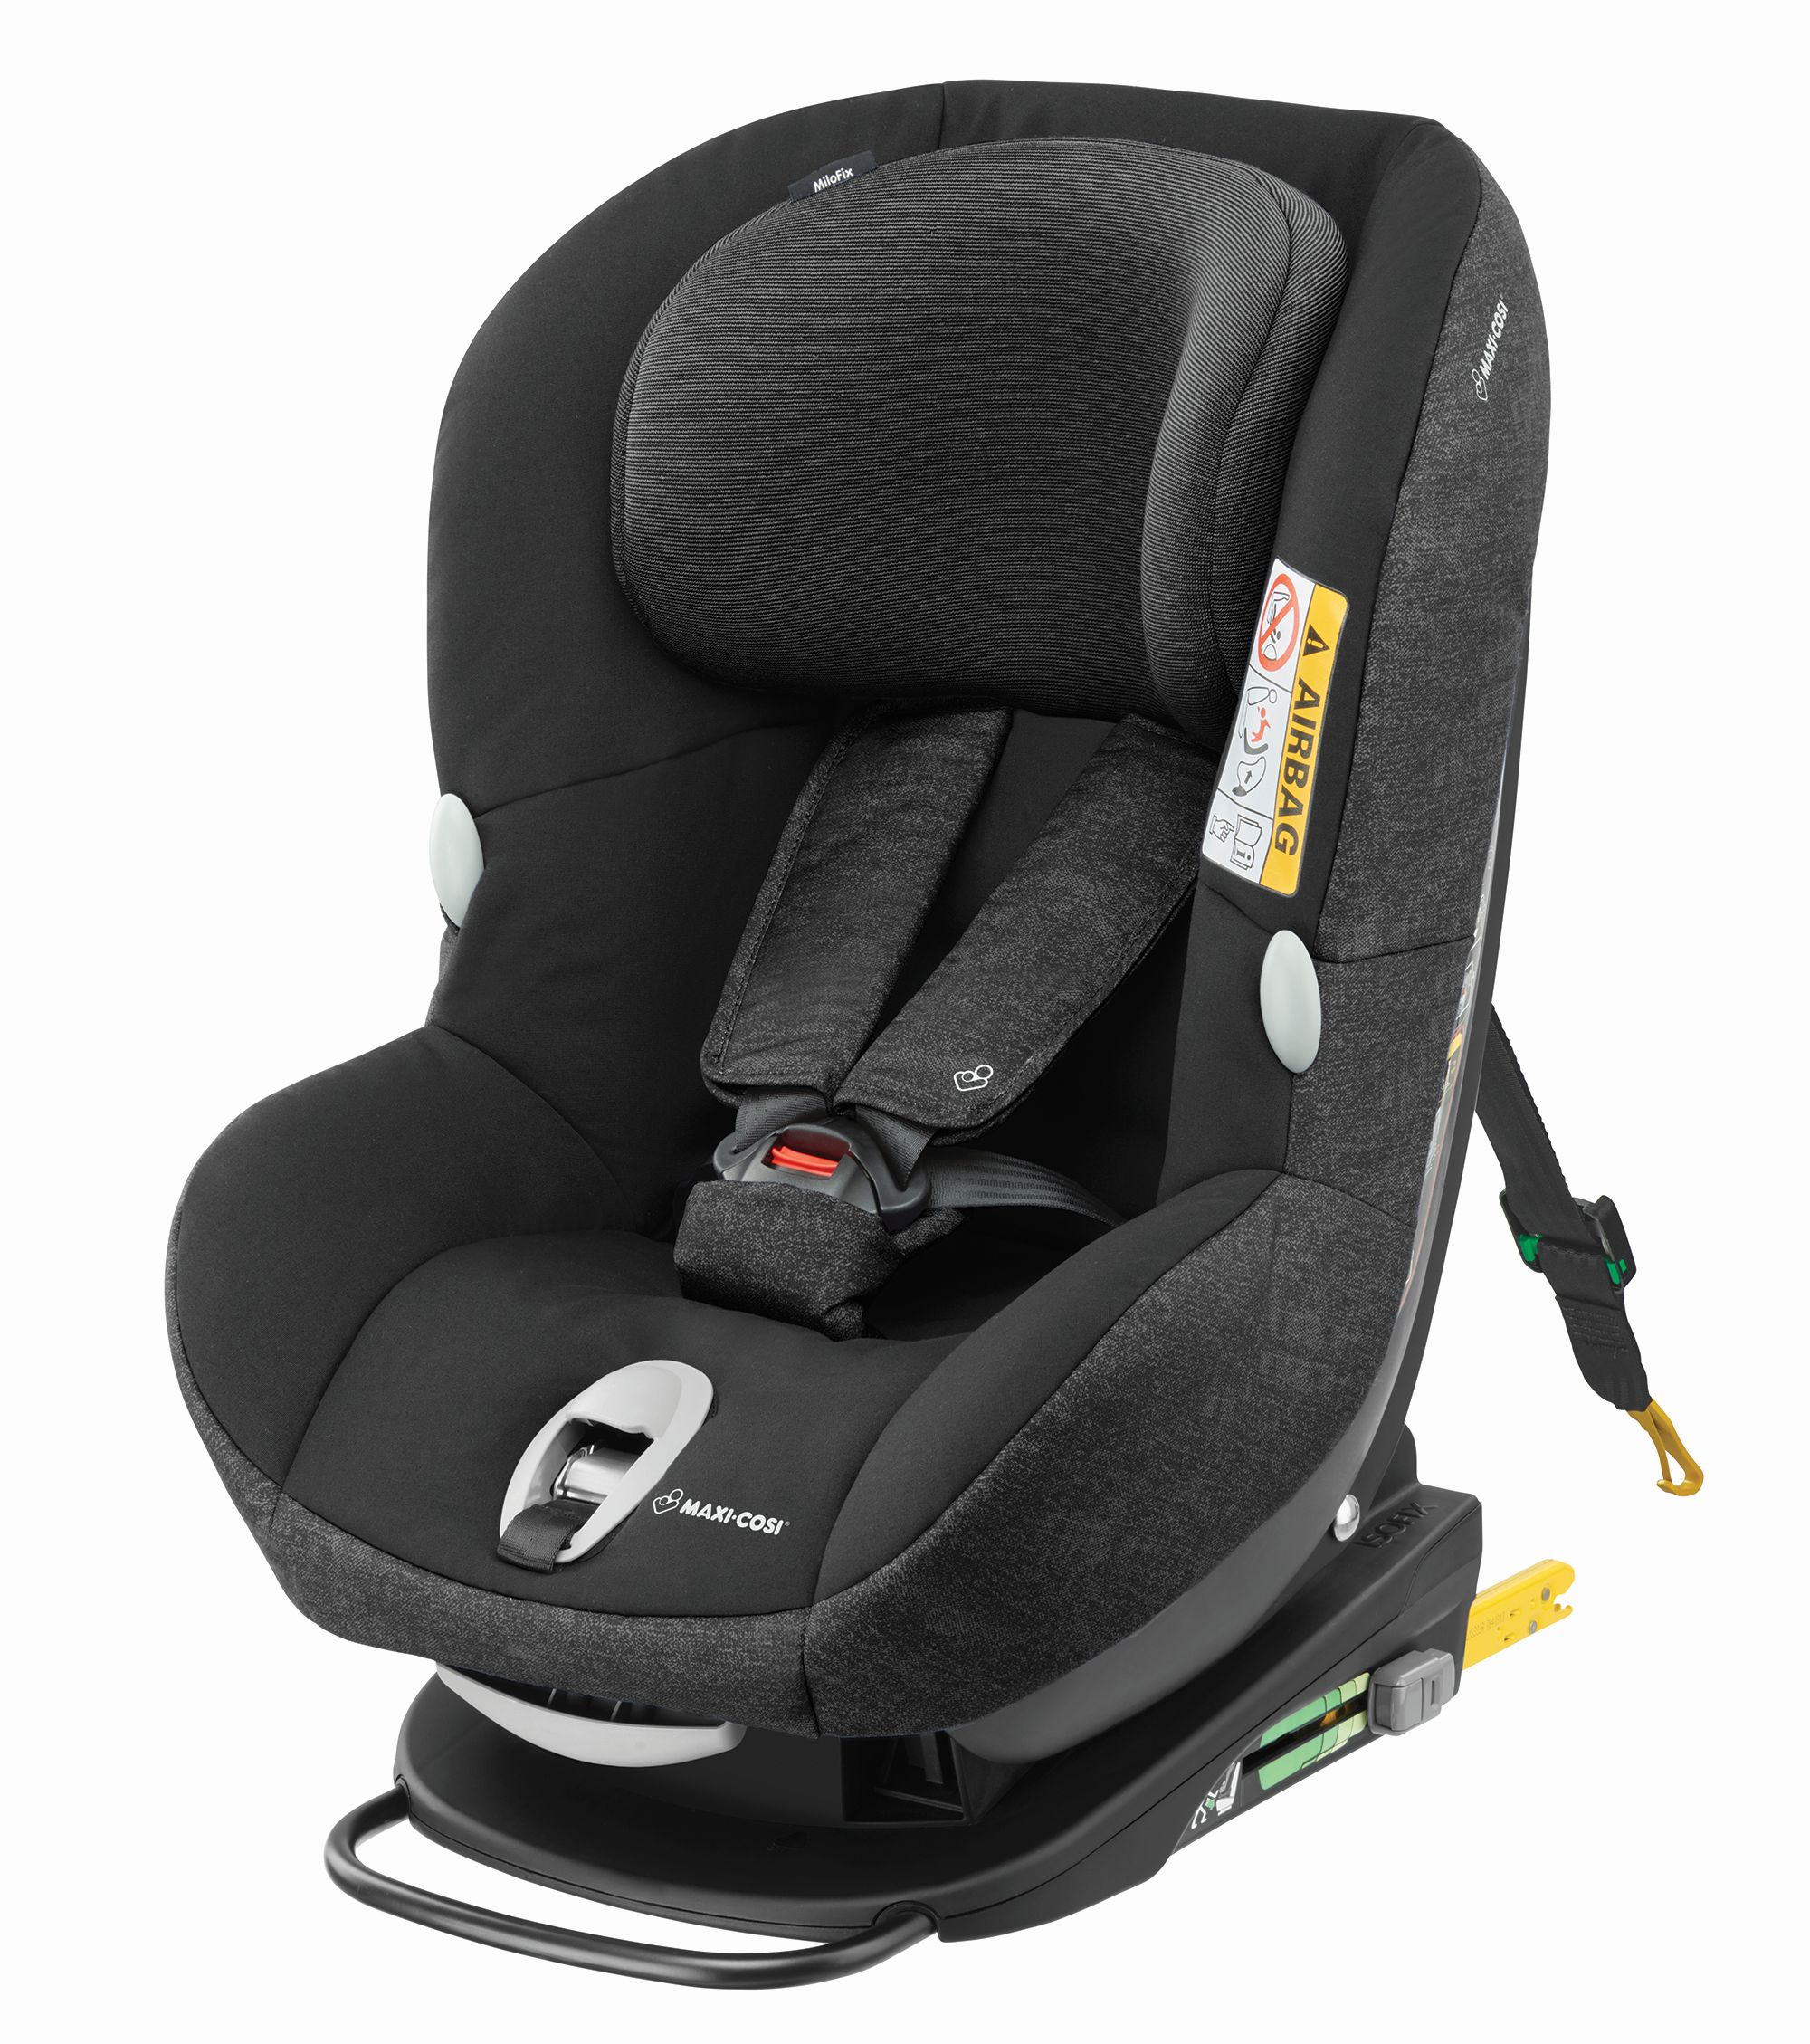 Maxi Cosi Child Car Seat MiloFix Nomad Black 2019